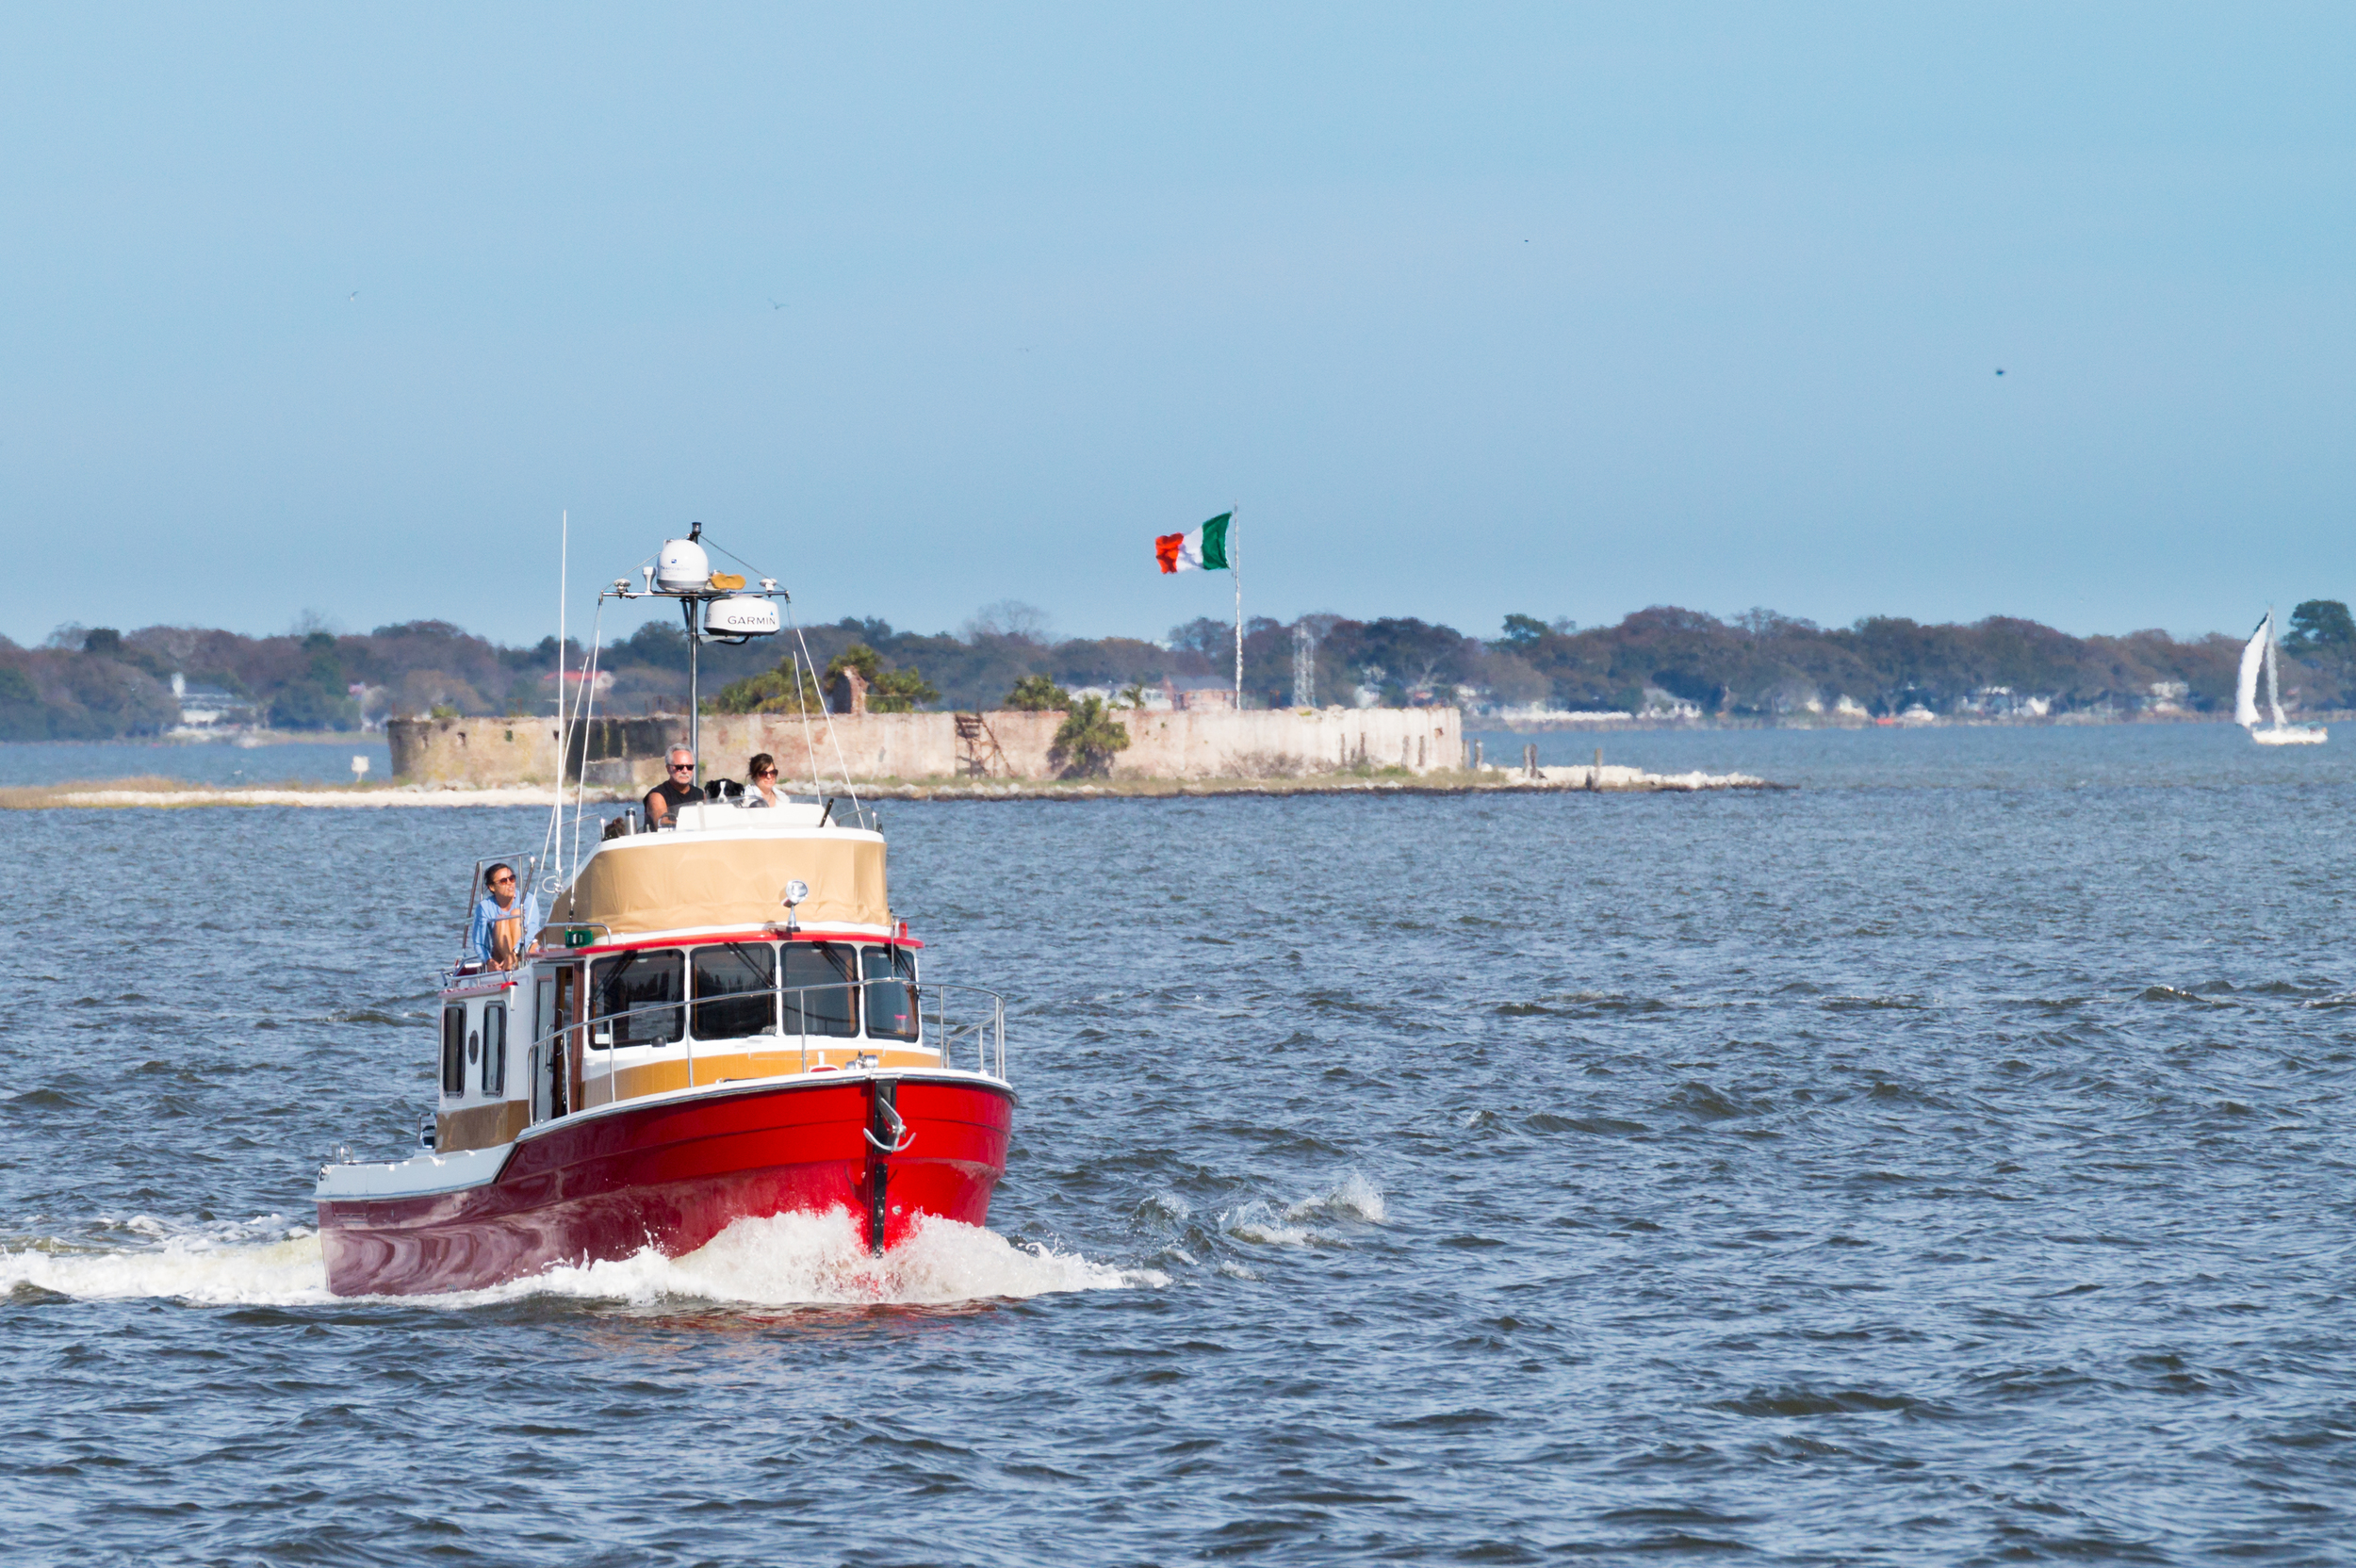 A boat crossing in front of Castle Pinckney during a sunny day.